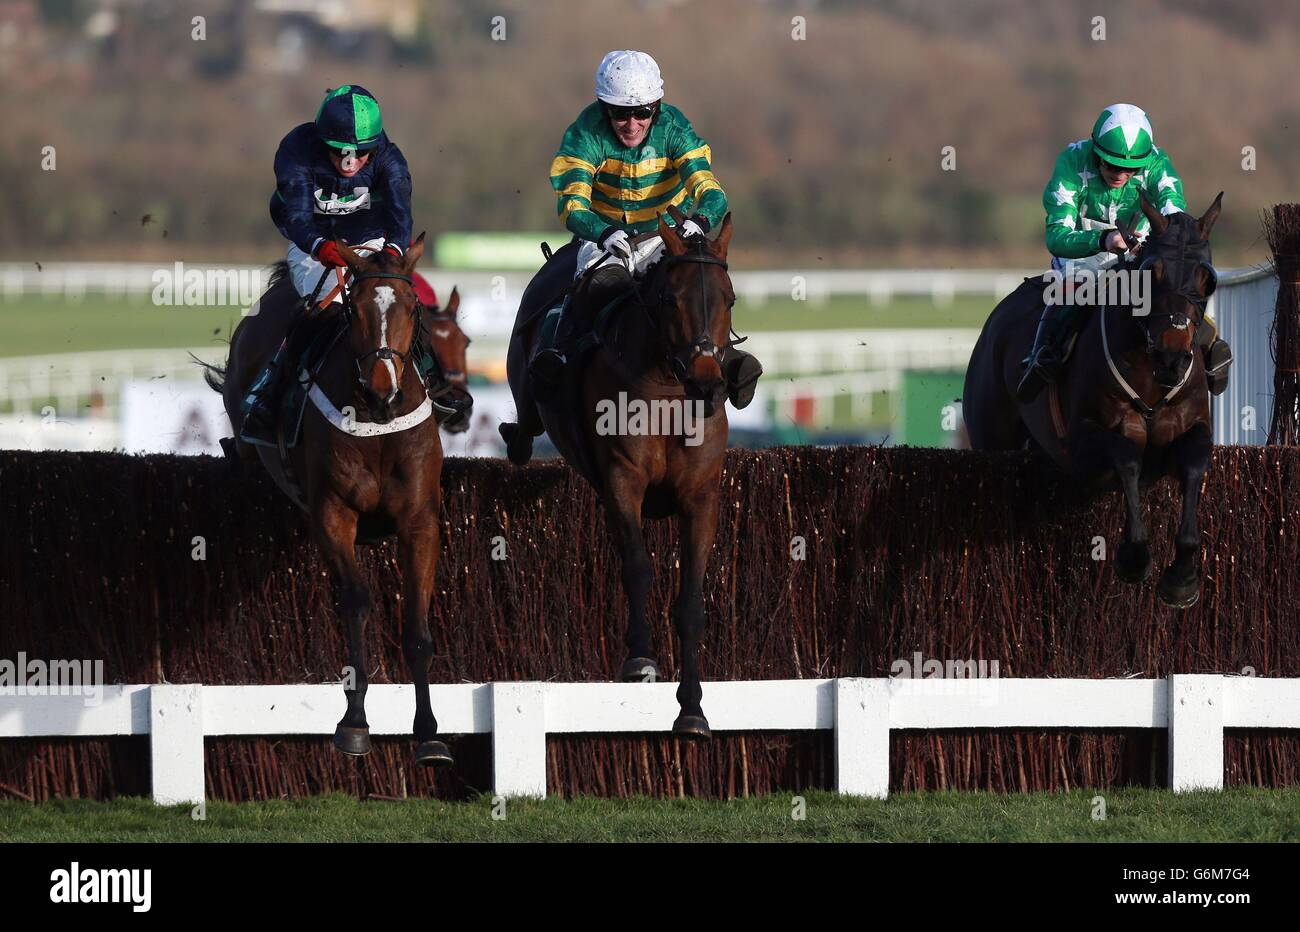 Horse Racing - 2013 The International - Day Two - Cheltenham Racecourse - Stock Image